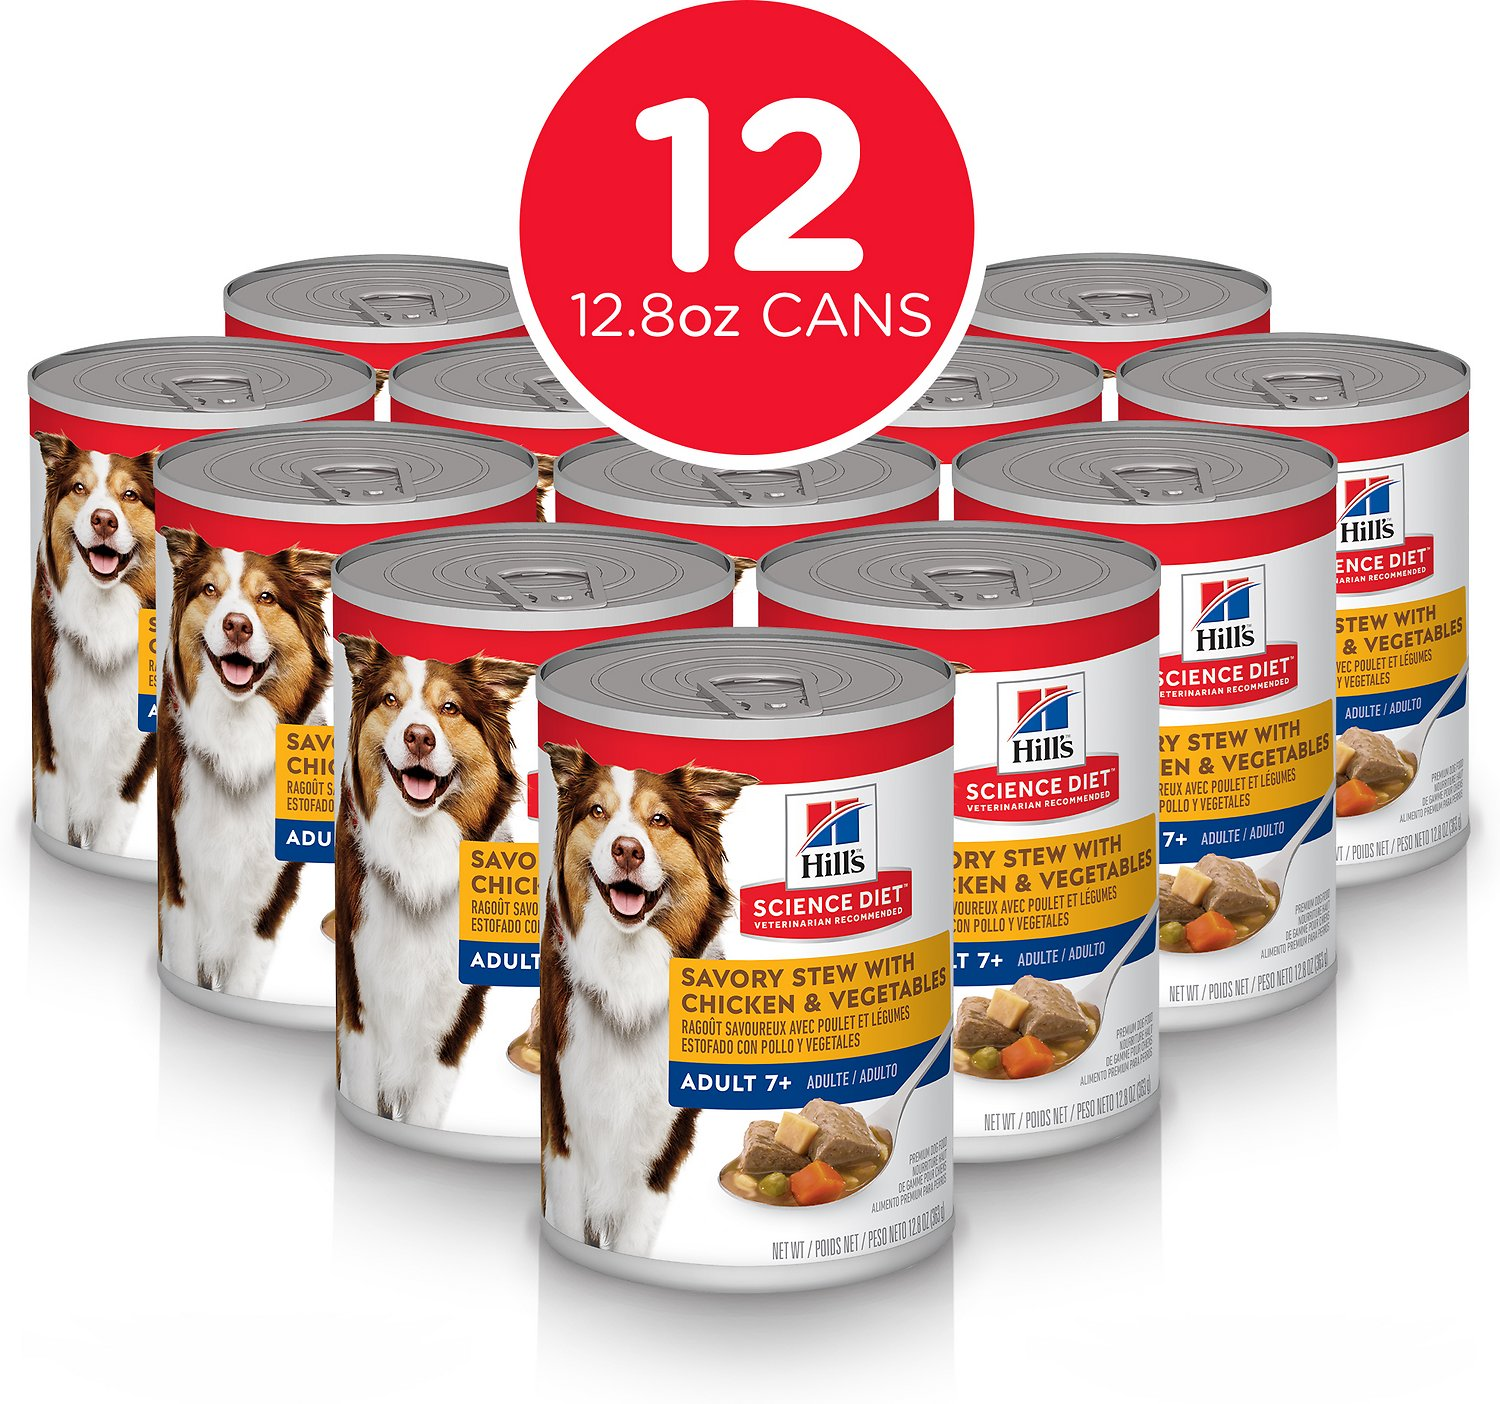 food diet science dog canned chicken adult chewy wet savory barley case oz hill stew vegetables entree pet dogs amazon